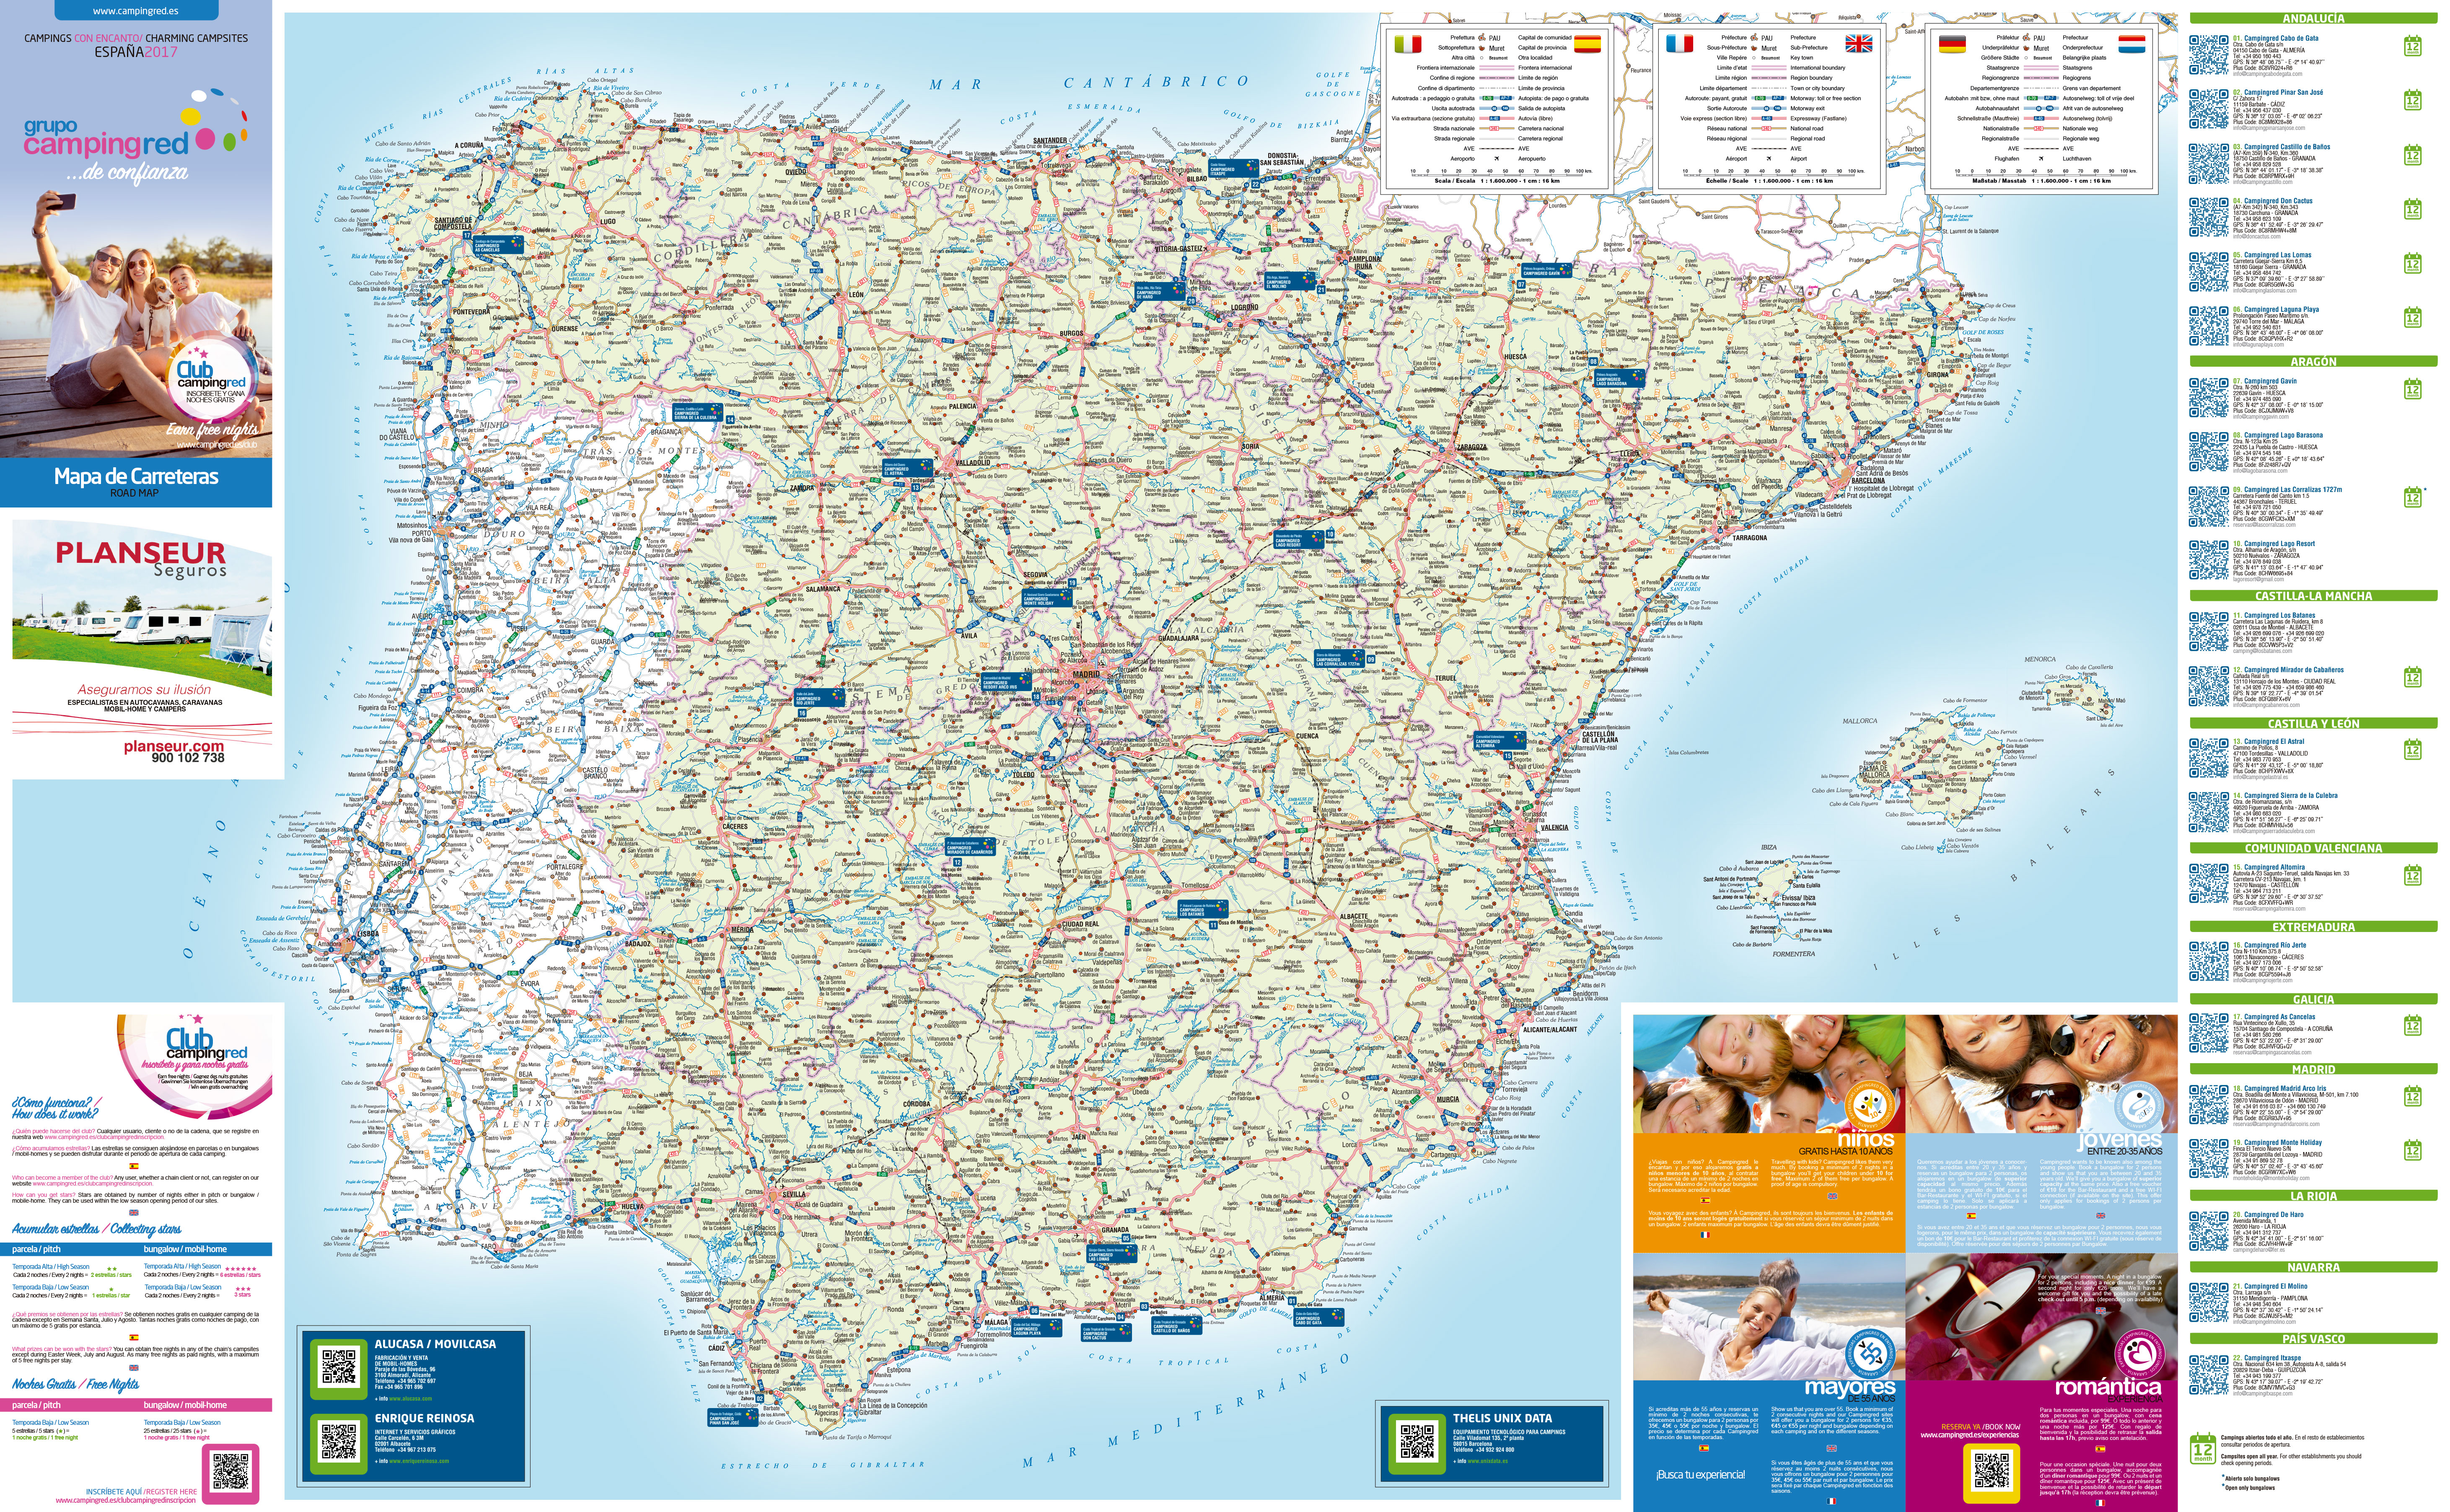 Grupo Campingred Campsites and Bungalows in Spain